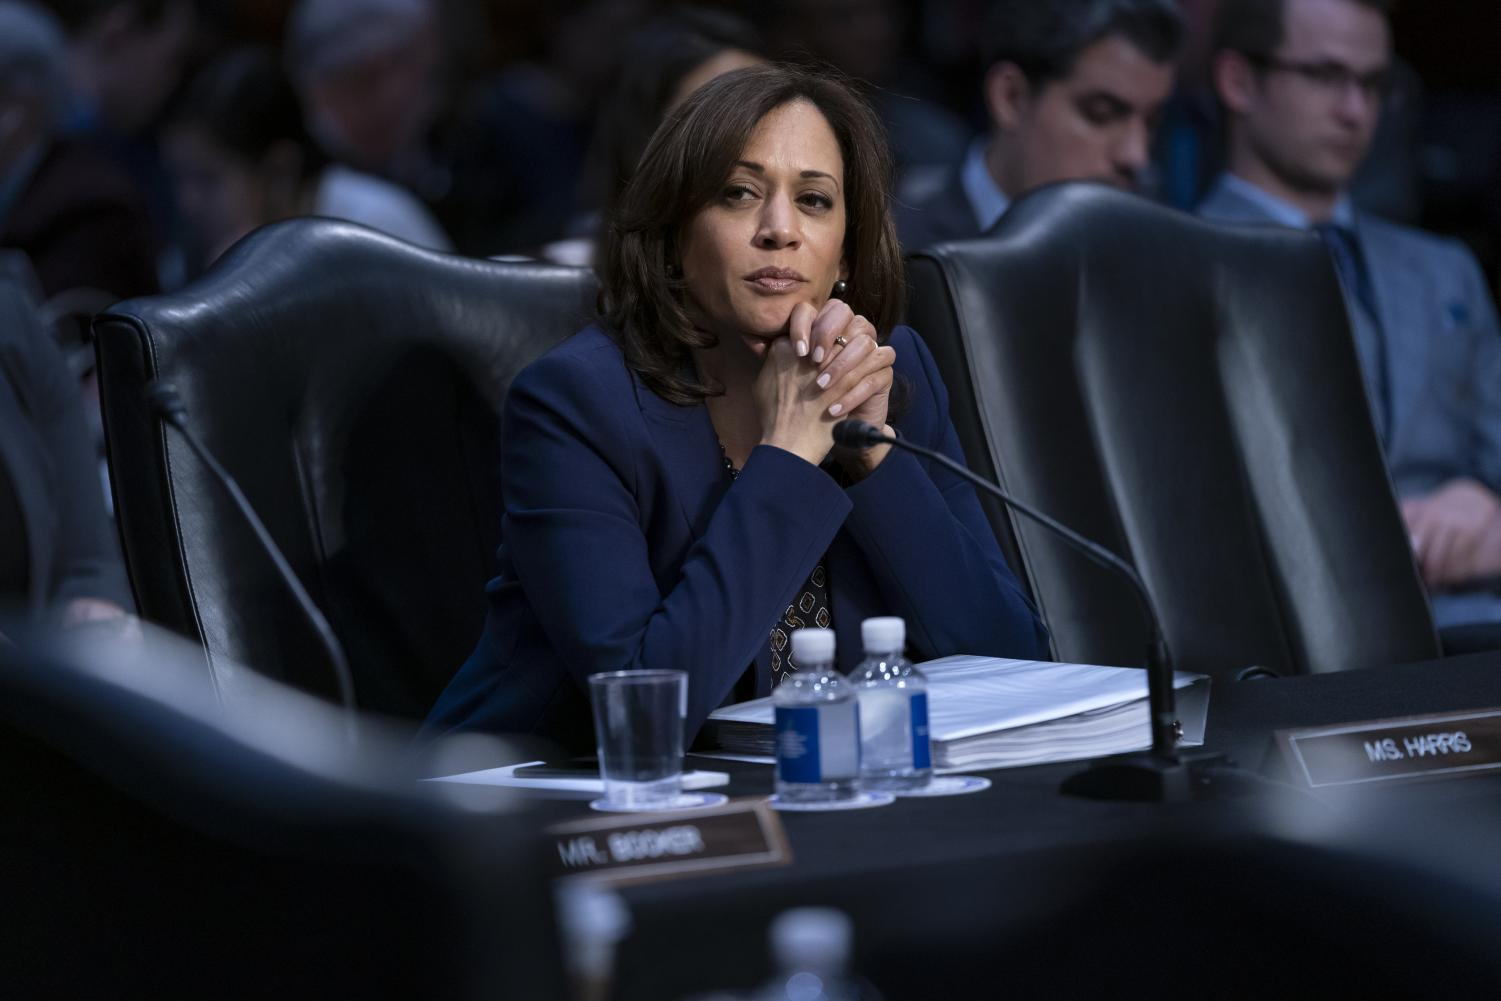 Sen. Kamala Harris on Capitol Hill on Feb. 7, 2019.